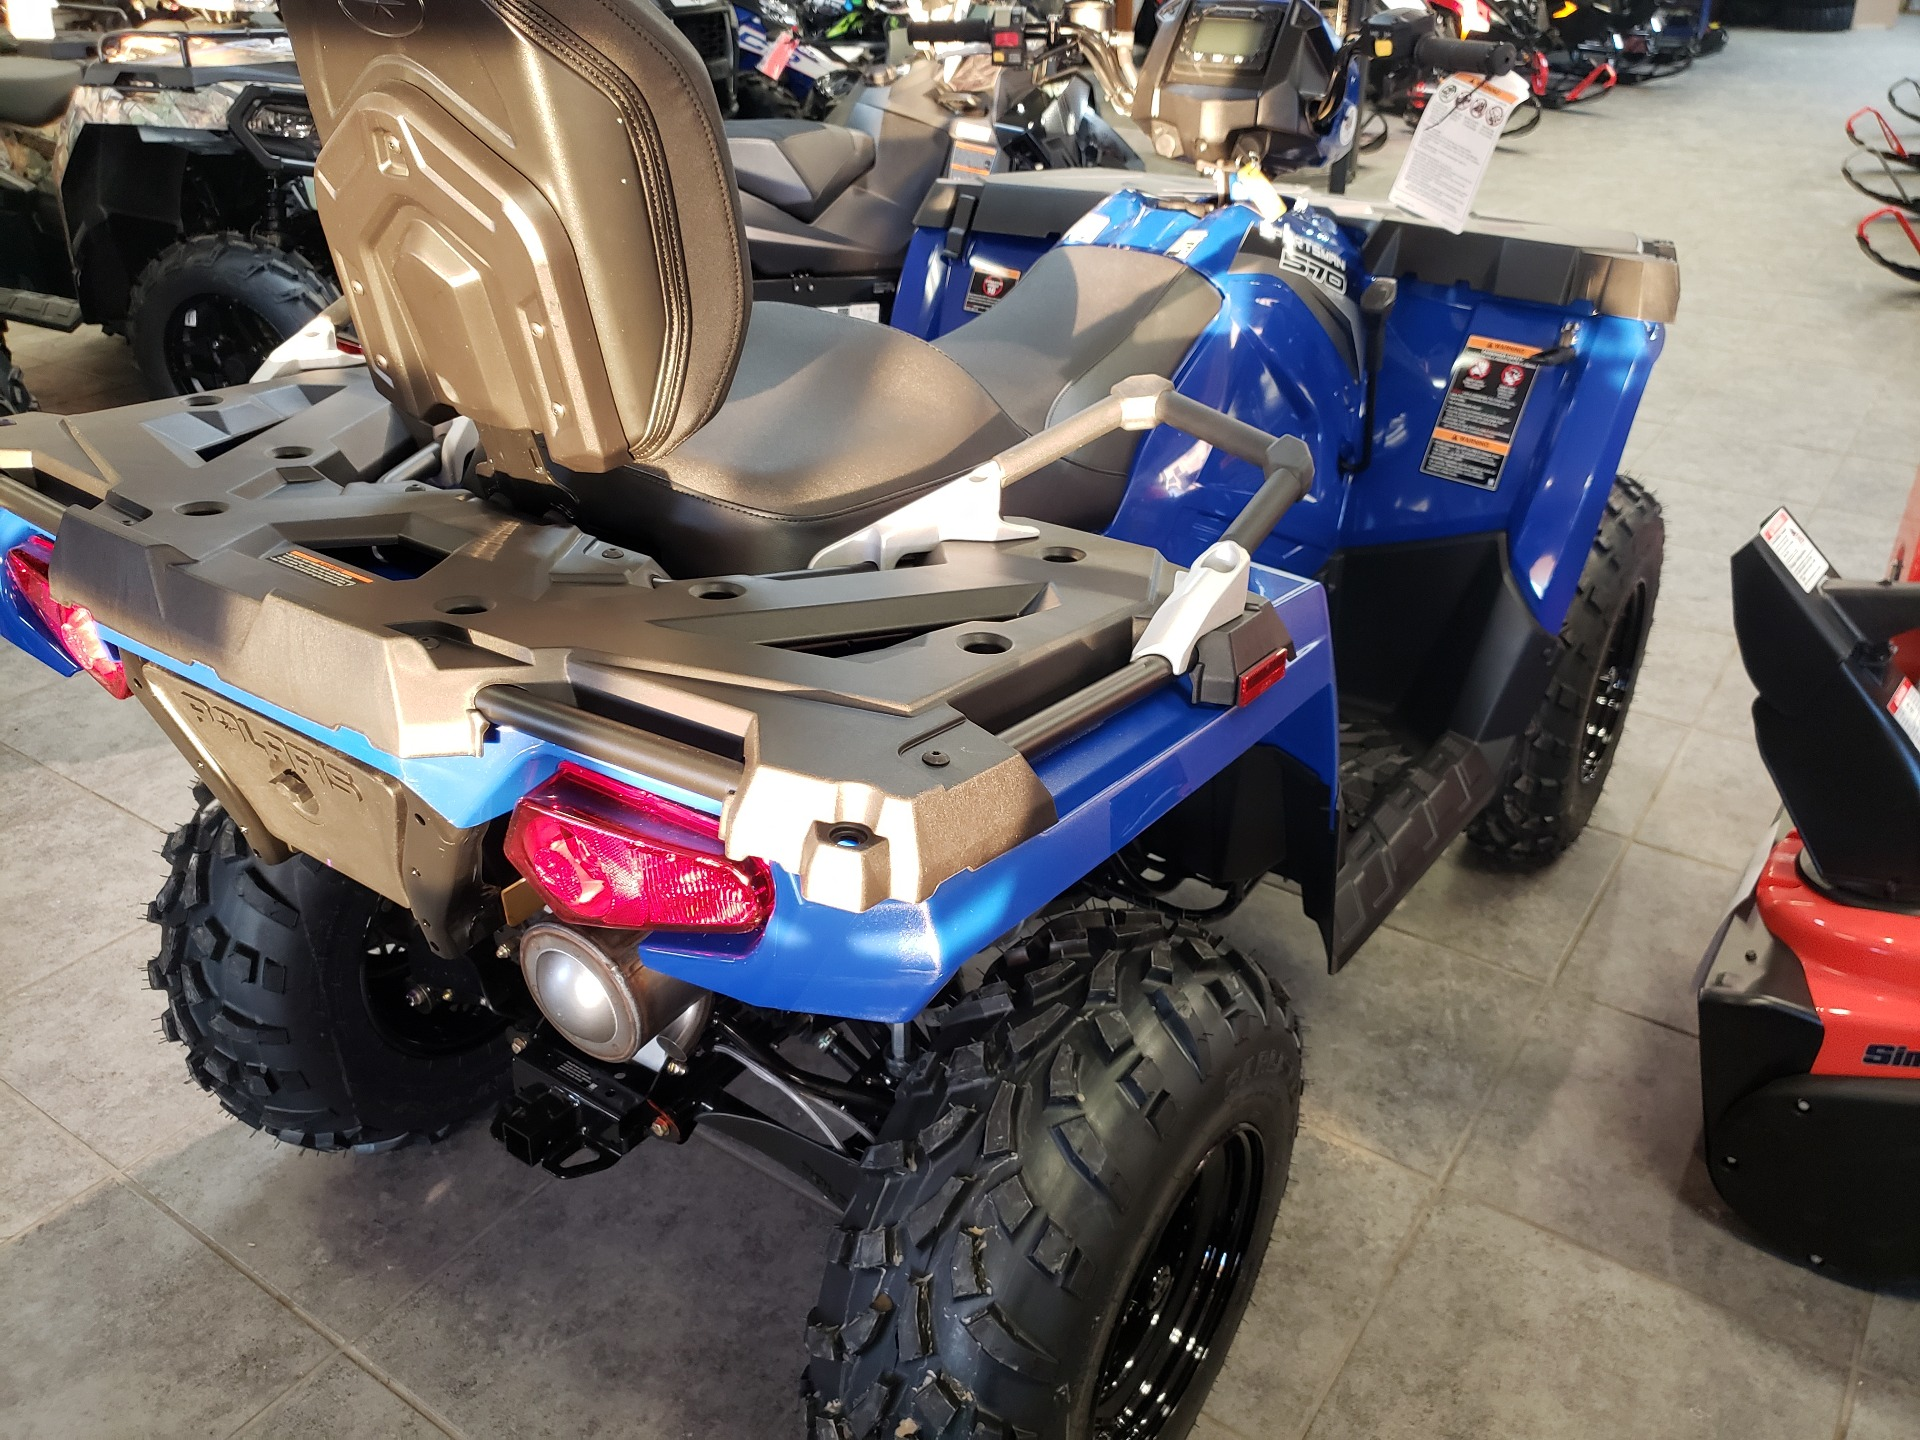 2021 Polaris Sportsman Touring 570 in Fond Du Lac, Wisconsin - Photo 5